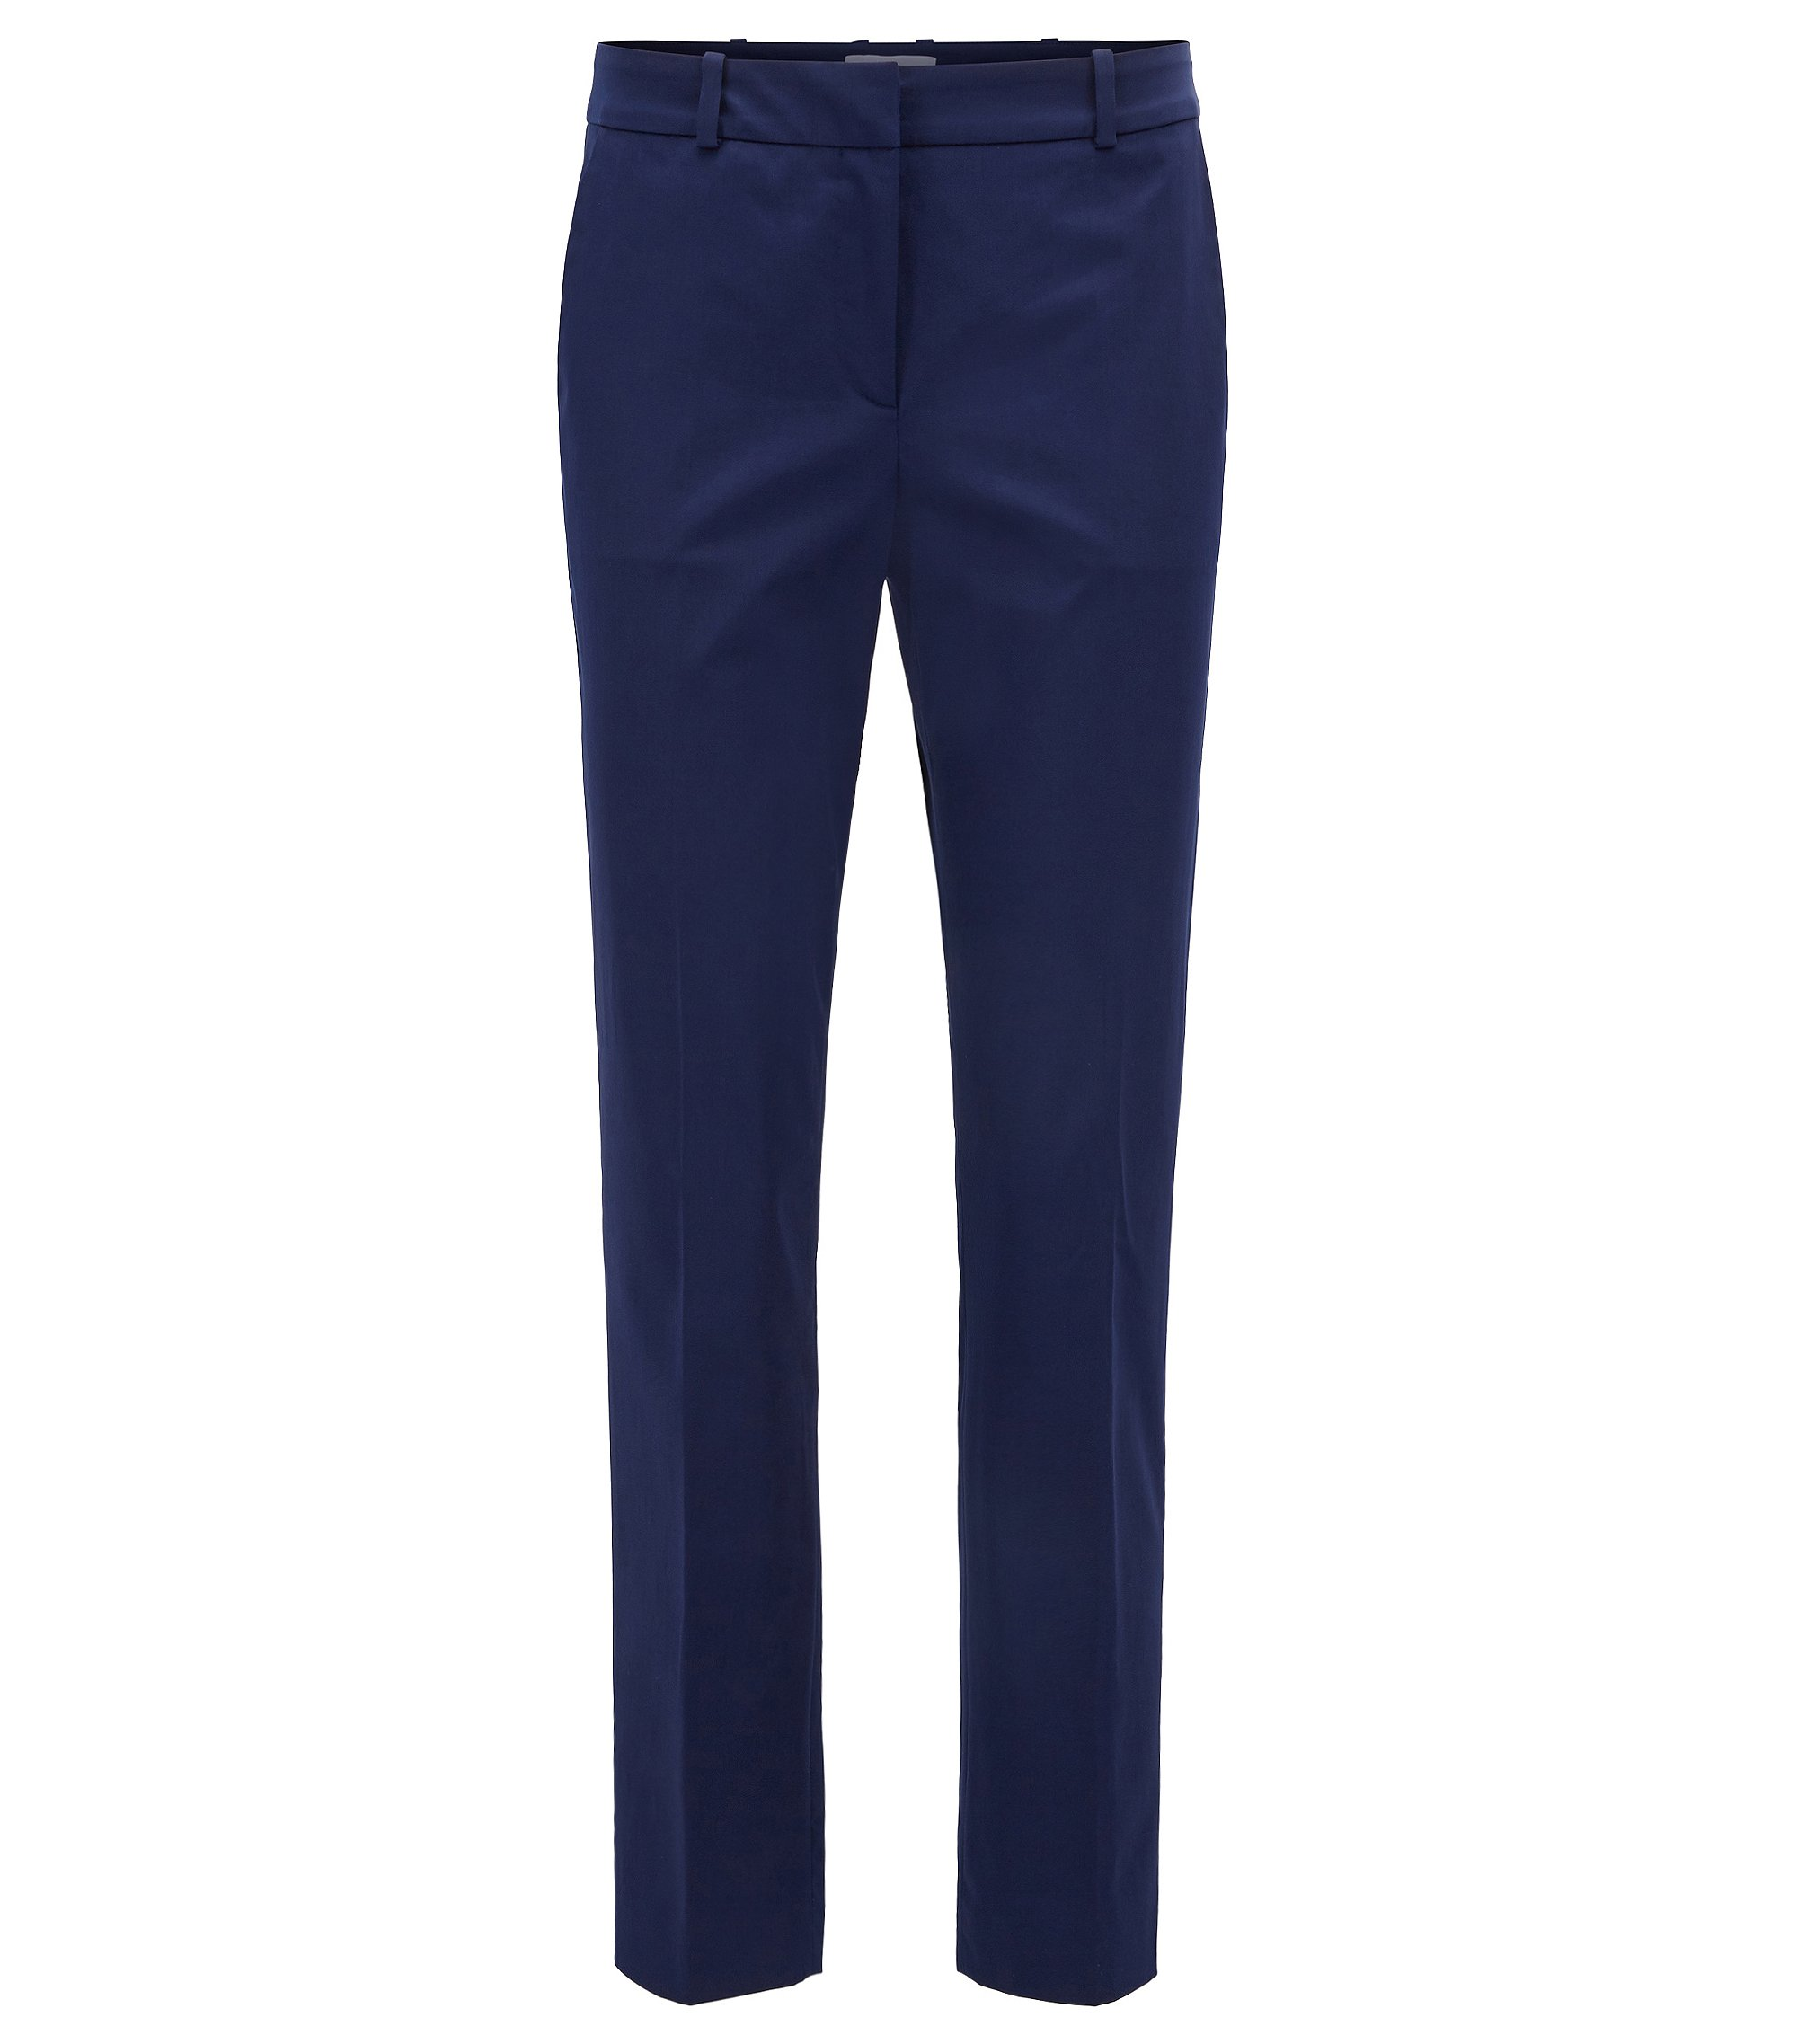 Relaxed-Fit Hose in Cropped-Länge aus Stretch-Baumwolle, Blau